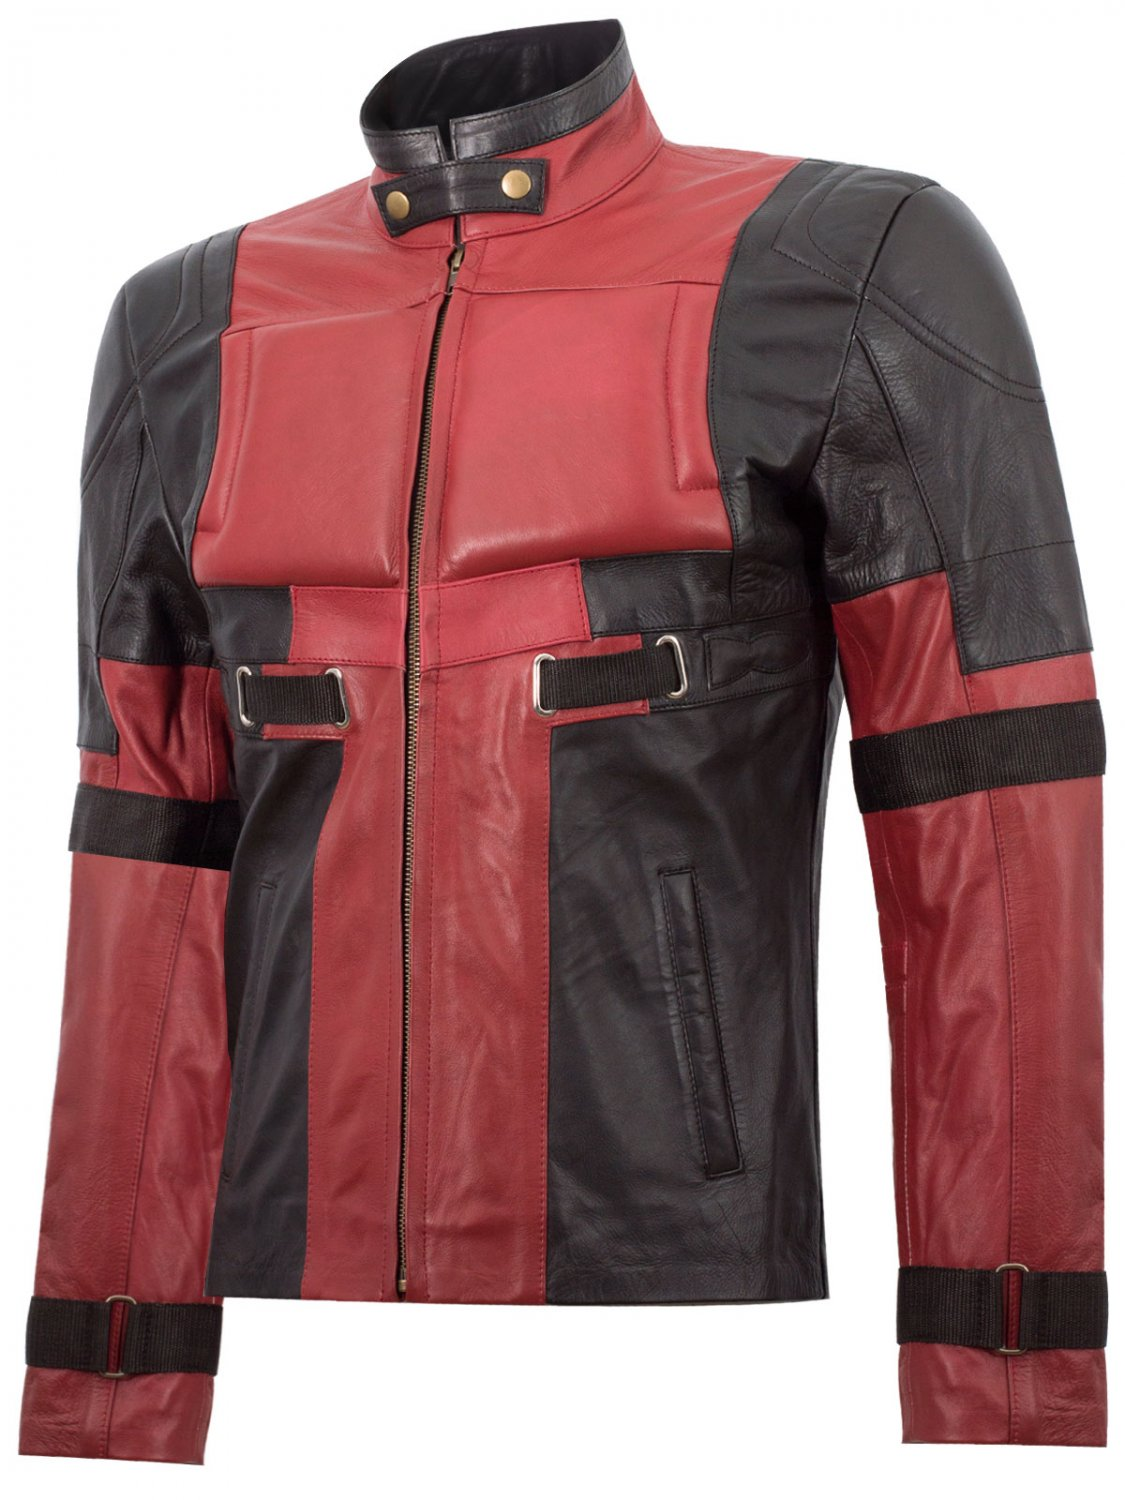 Red & Black Cosplay Ryan Reynold Deadpool Costume Leather Jacket